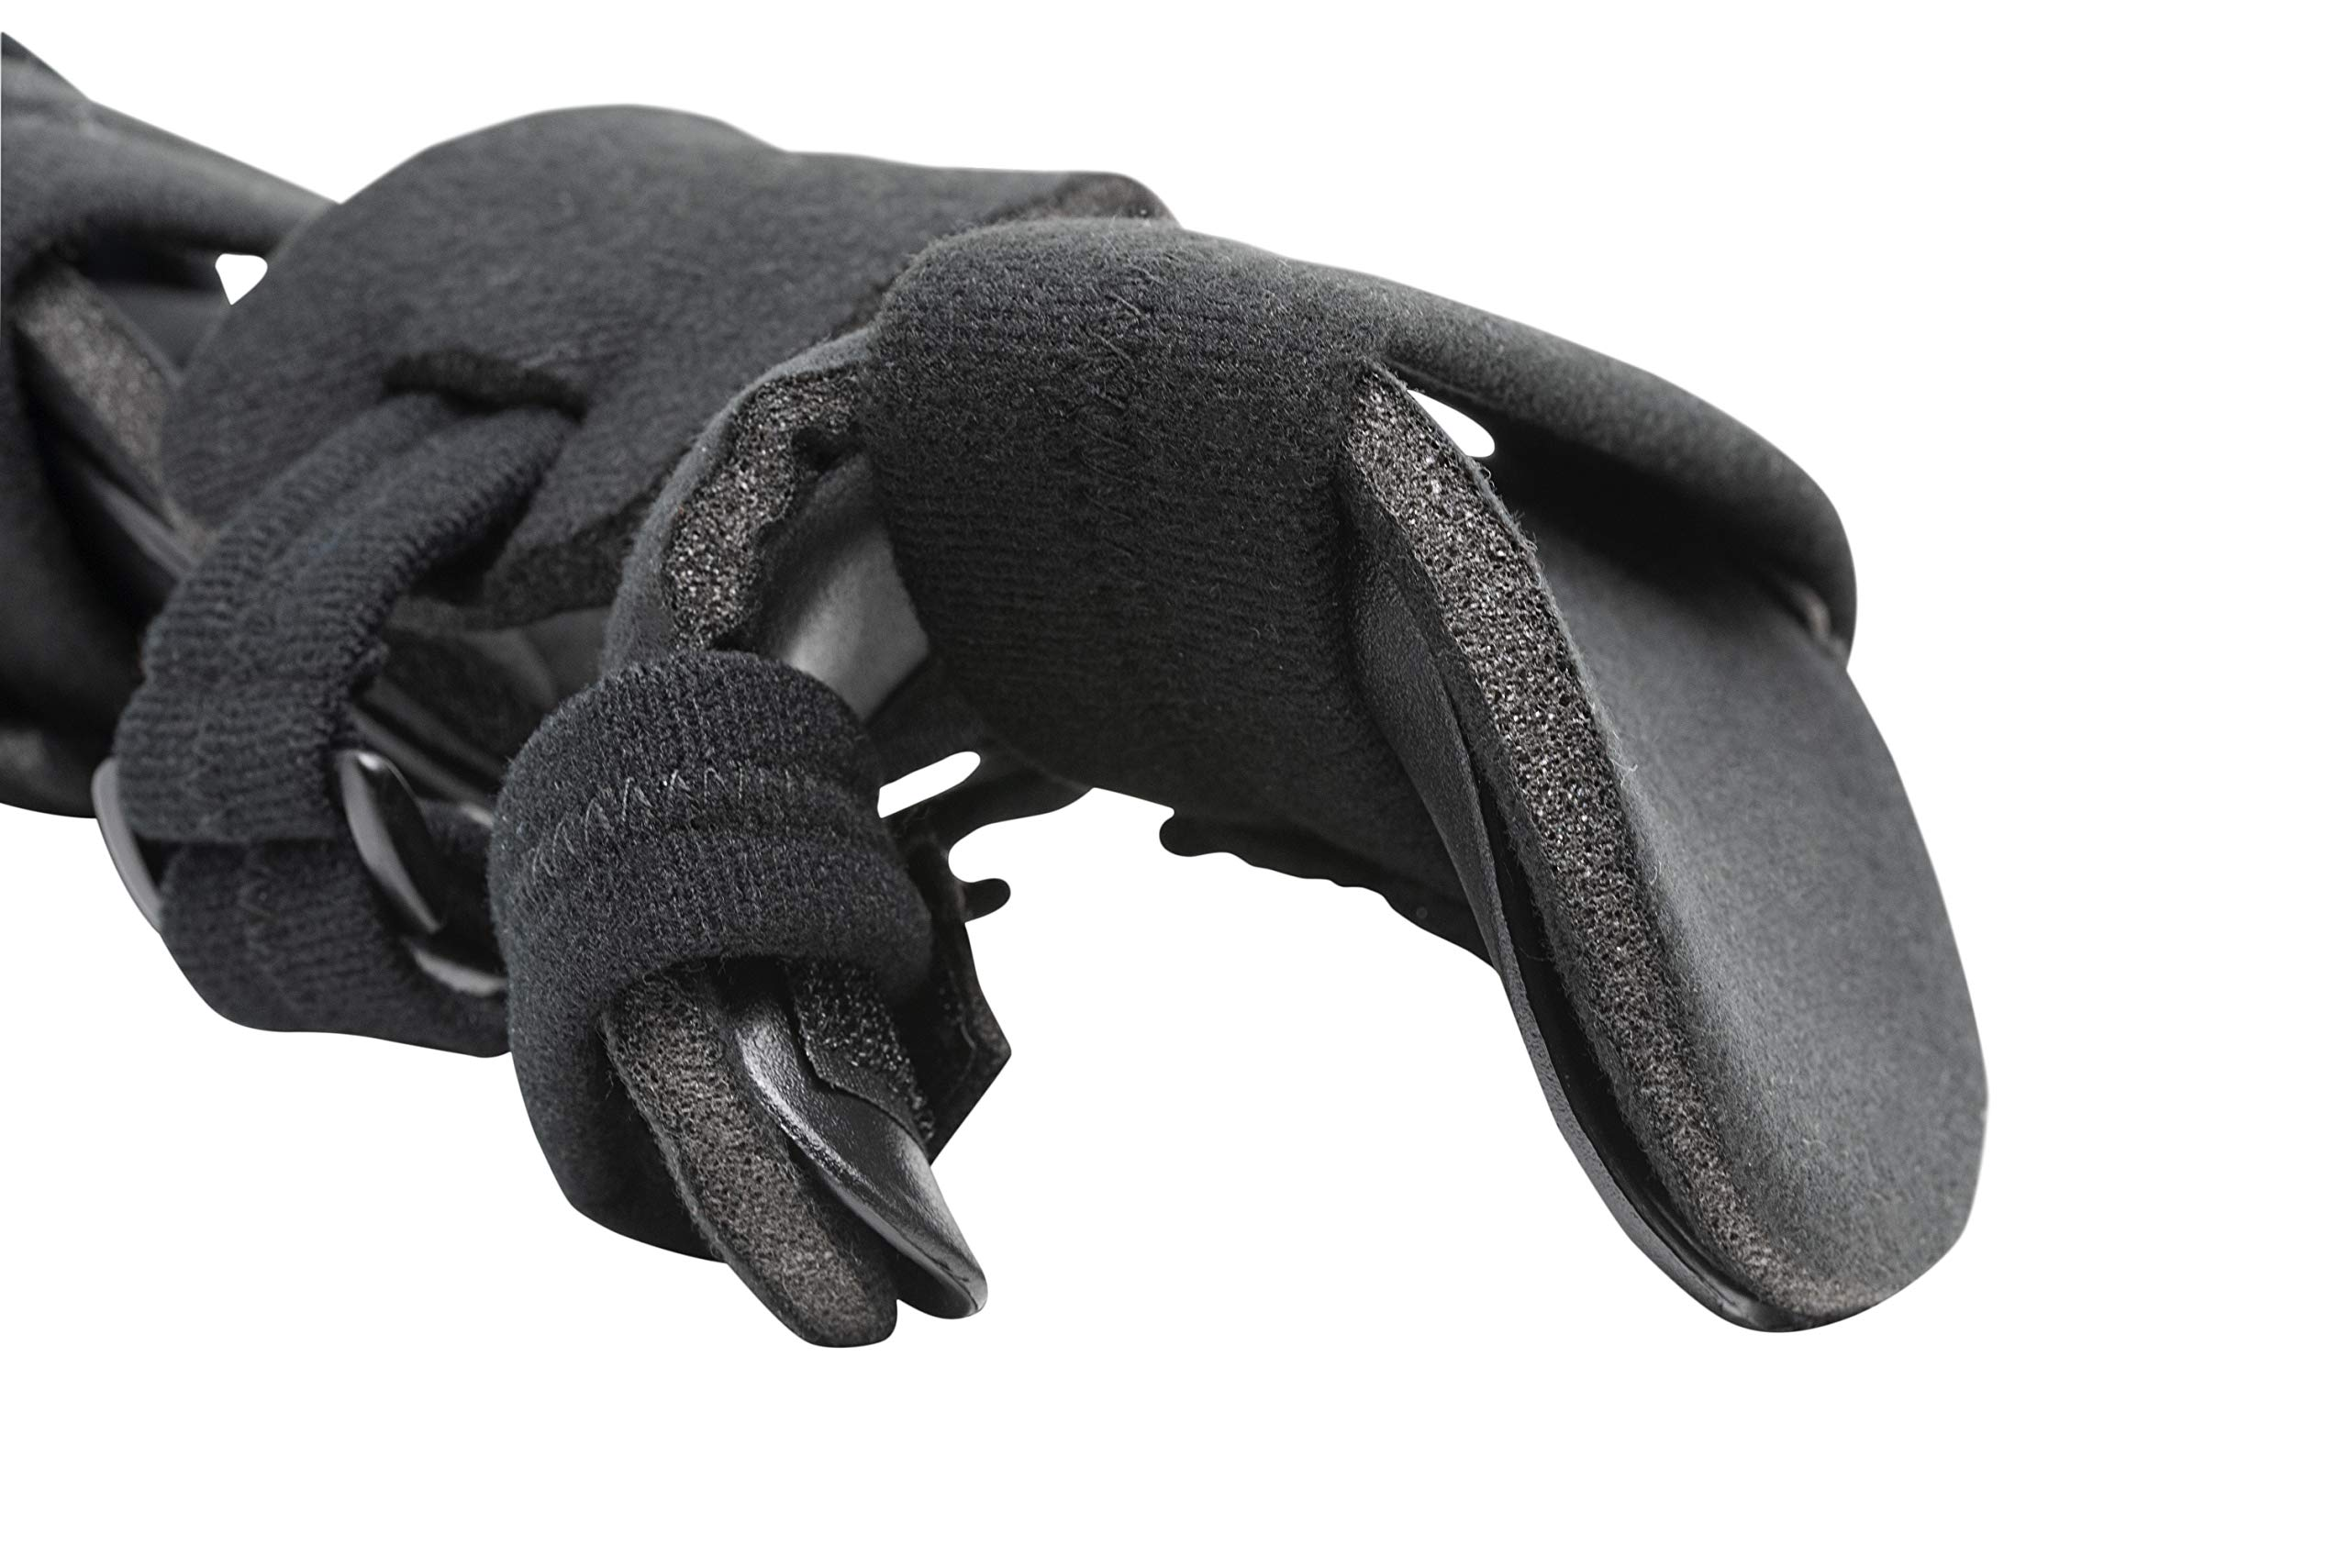 Stroke Hand Splint- Soft Resting Hand Splint for Flexion Contractures, Comfortably Stretch and Rest Hands for Long Term Ease with Functional Hand Splint, an American Heritage Industries(Left, Small) by American Heritage Industries (Image #4)